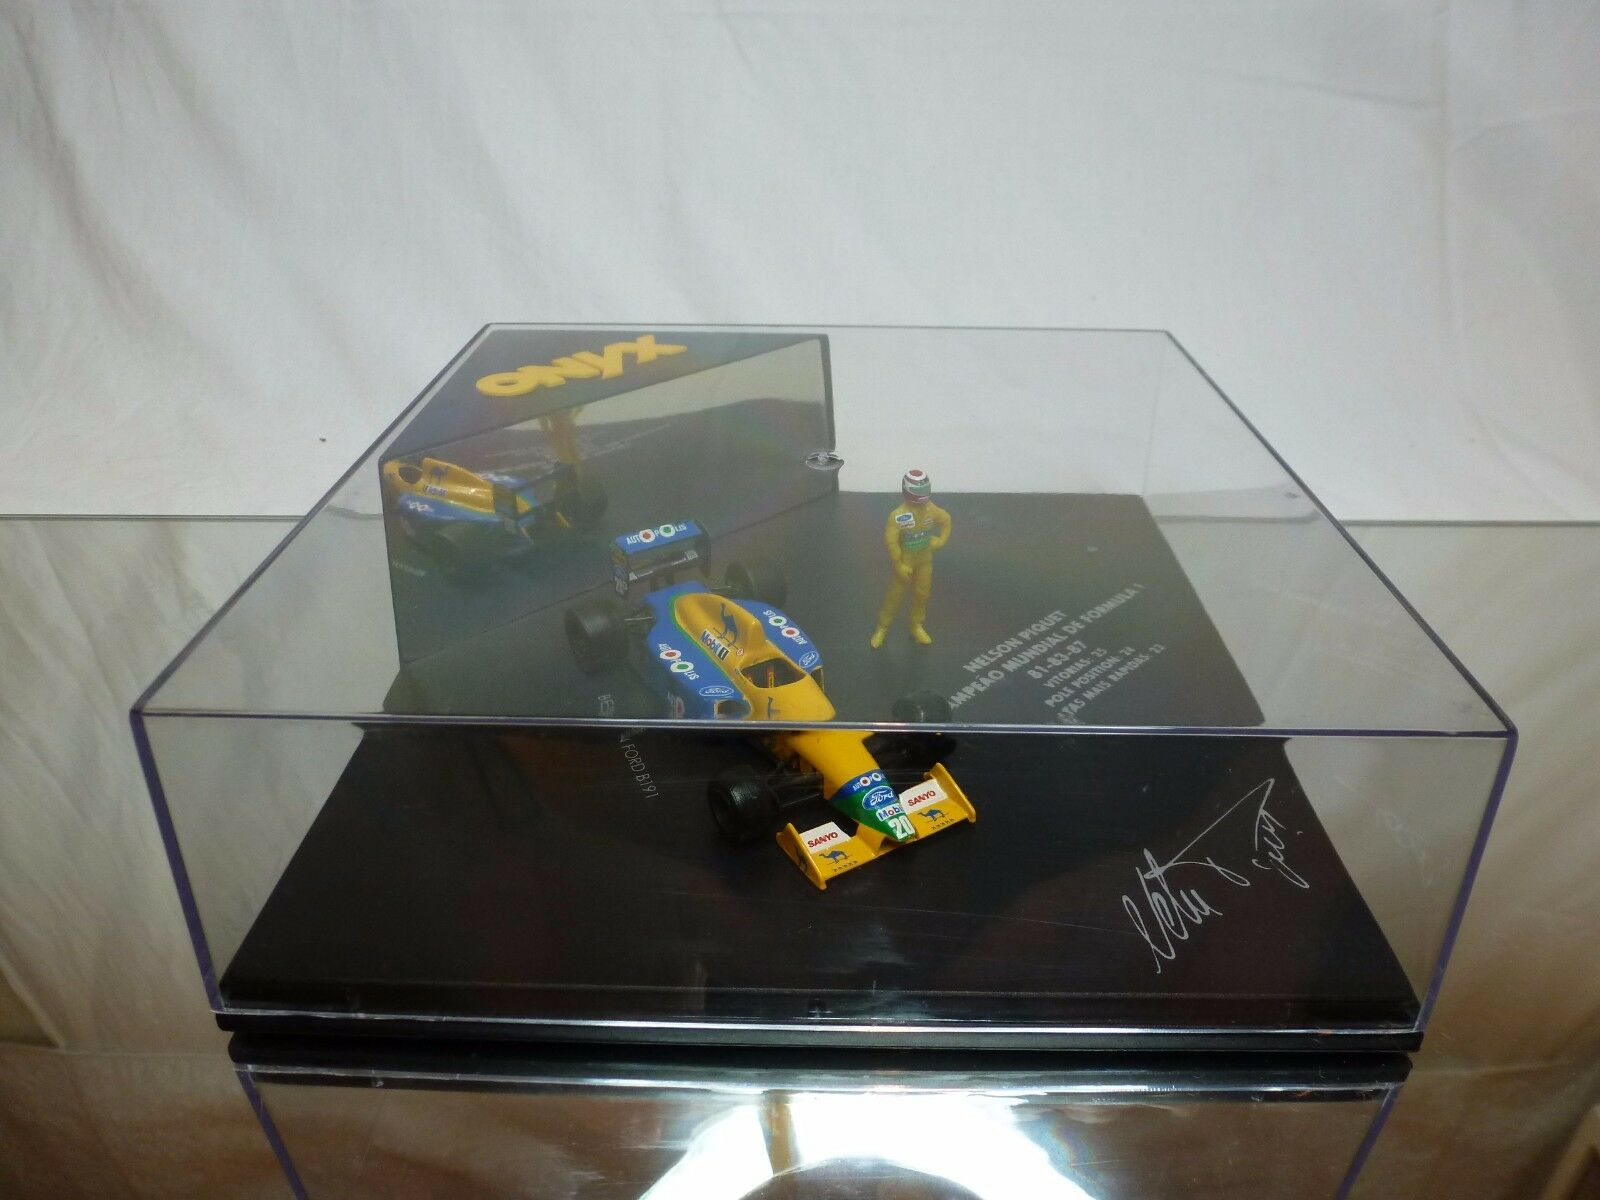 ONYX BENETTON FORD B191 CAMEL - NELSON PIQUET WORLD CHAMPION F1 81 83 87 - RARE